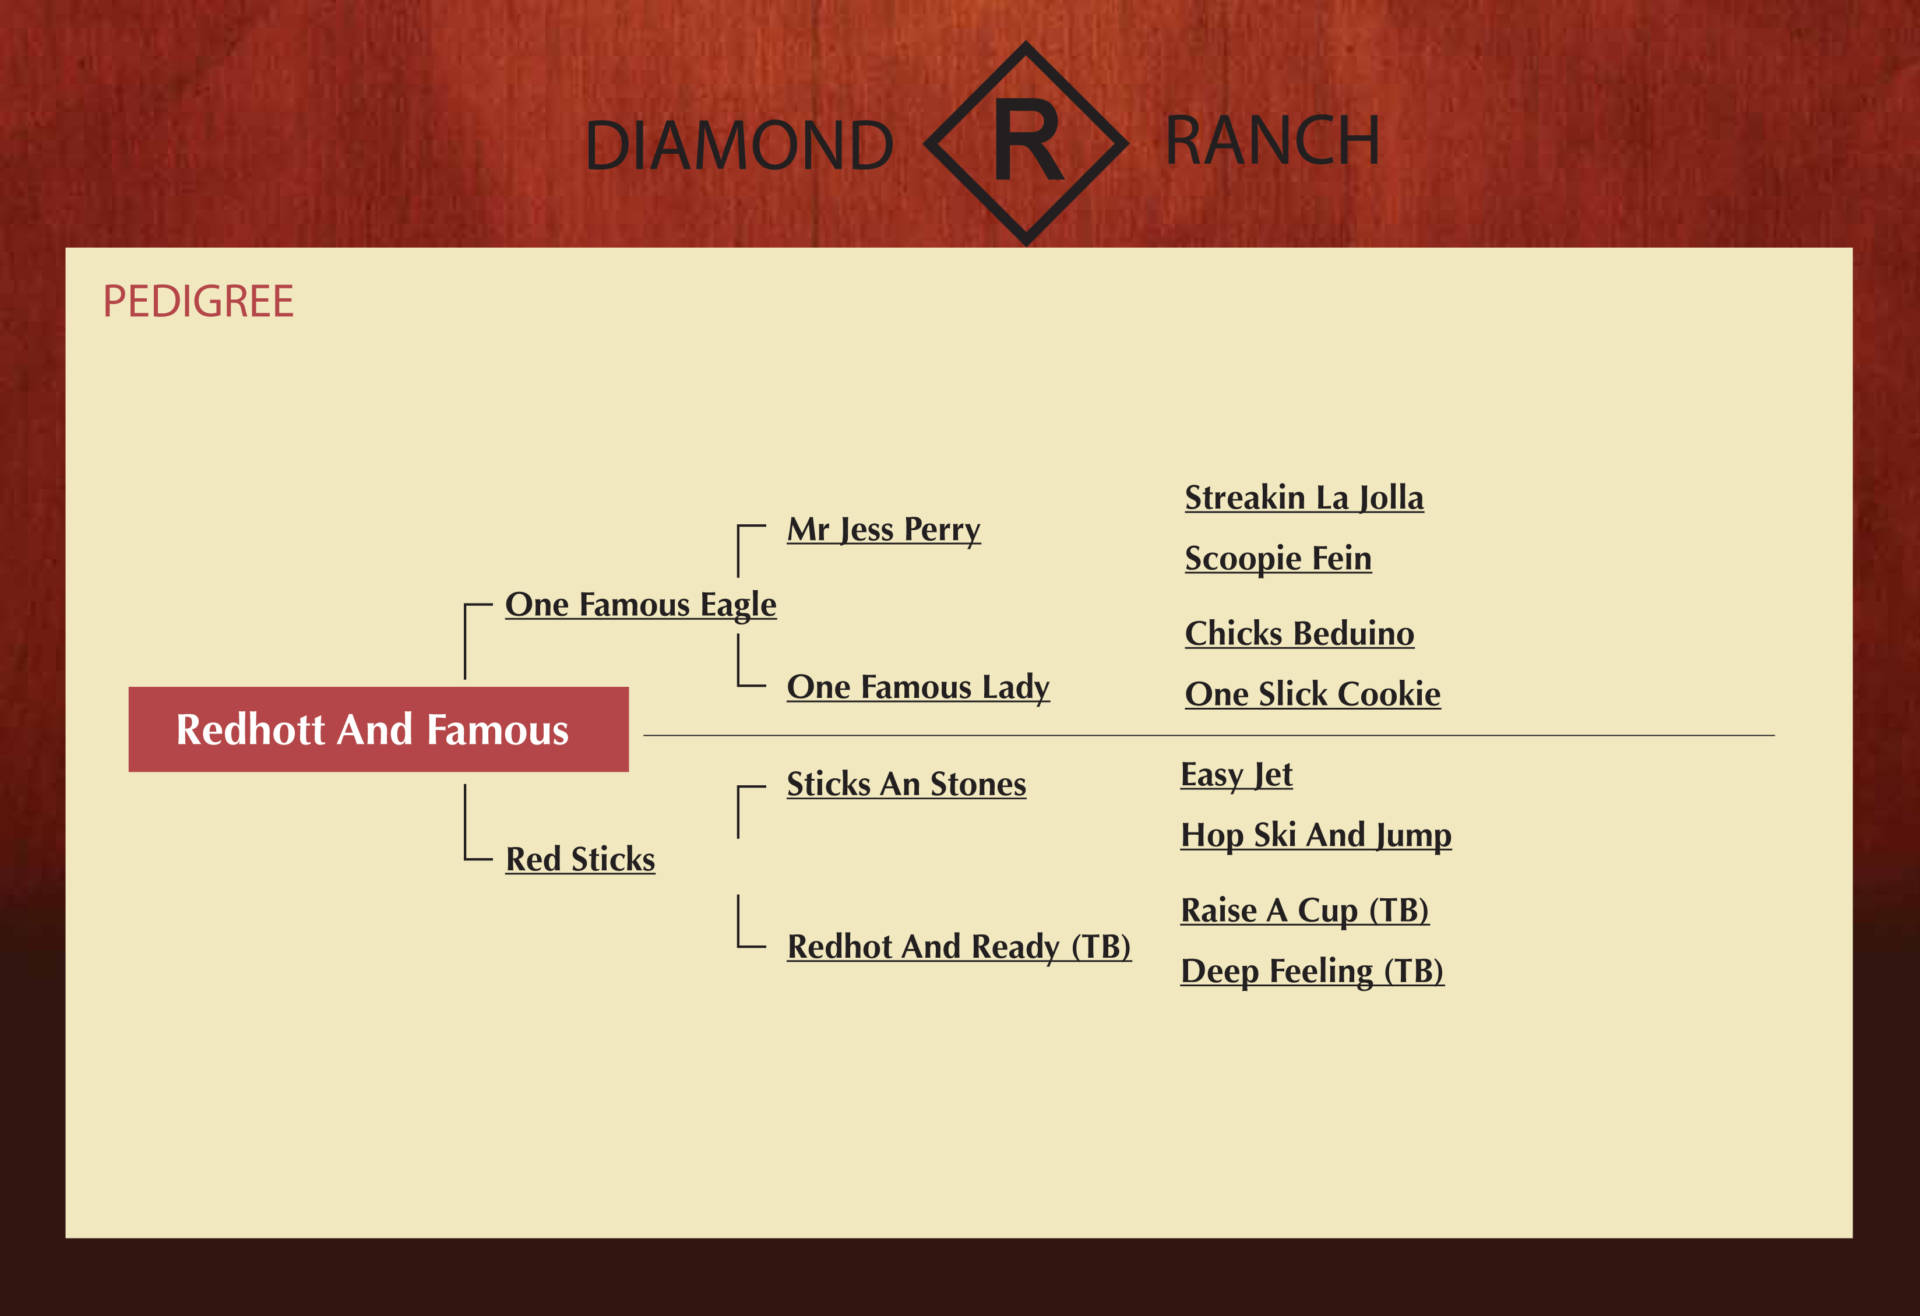 Redhott And Famous - Pedigree